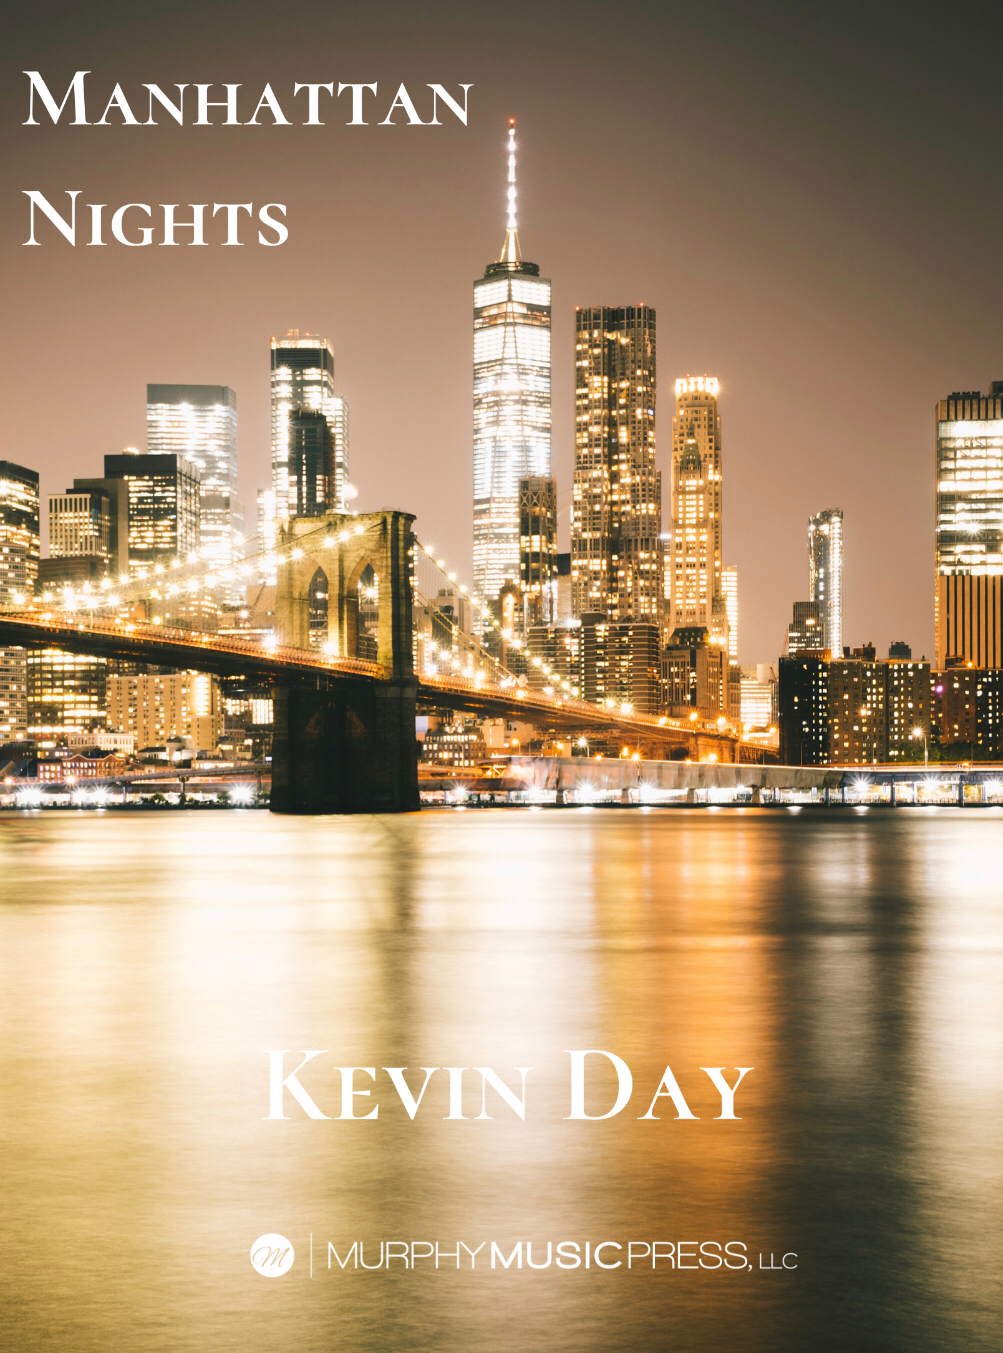 Manhattan Nights by Kevin Day